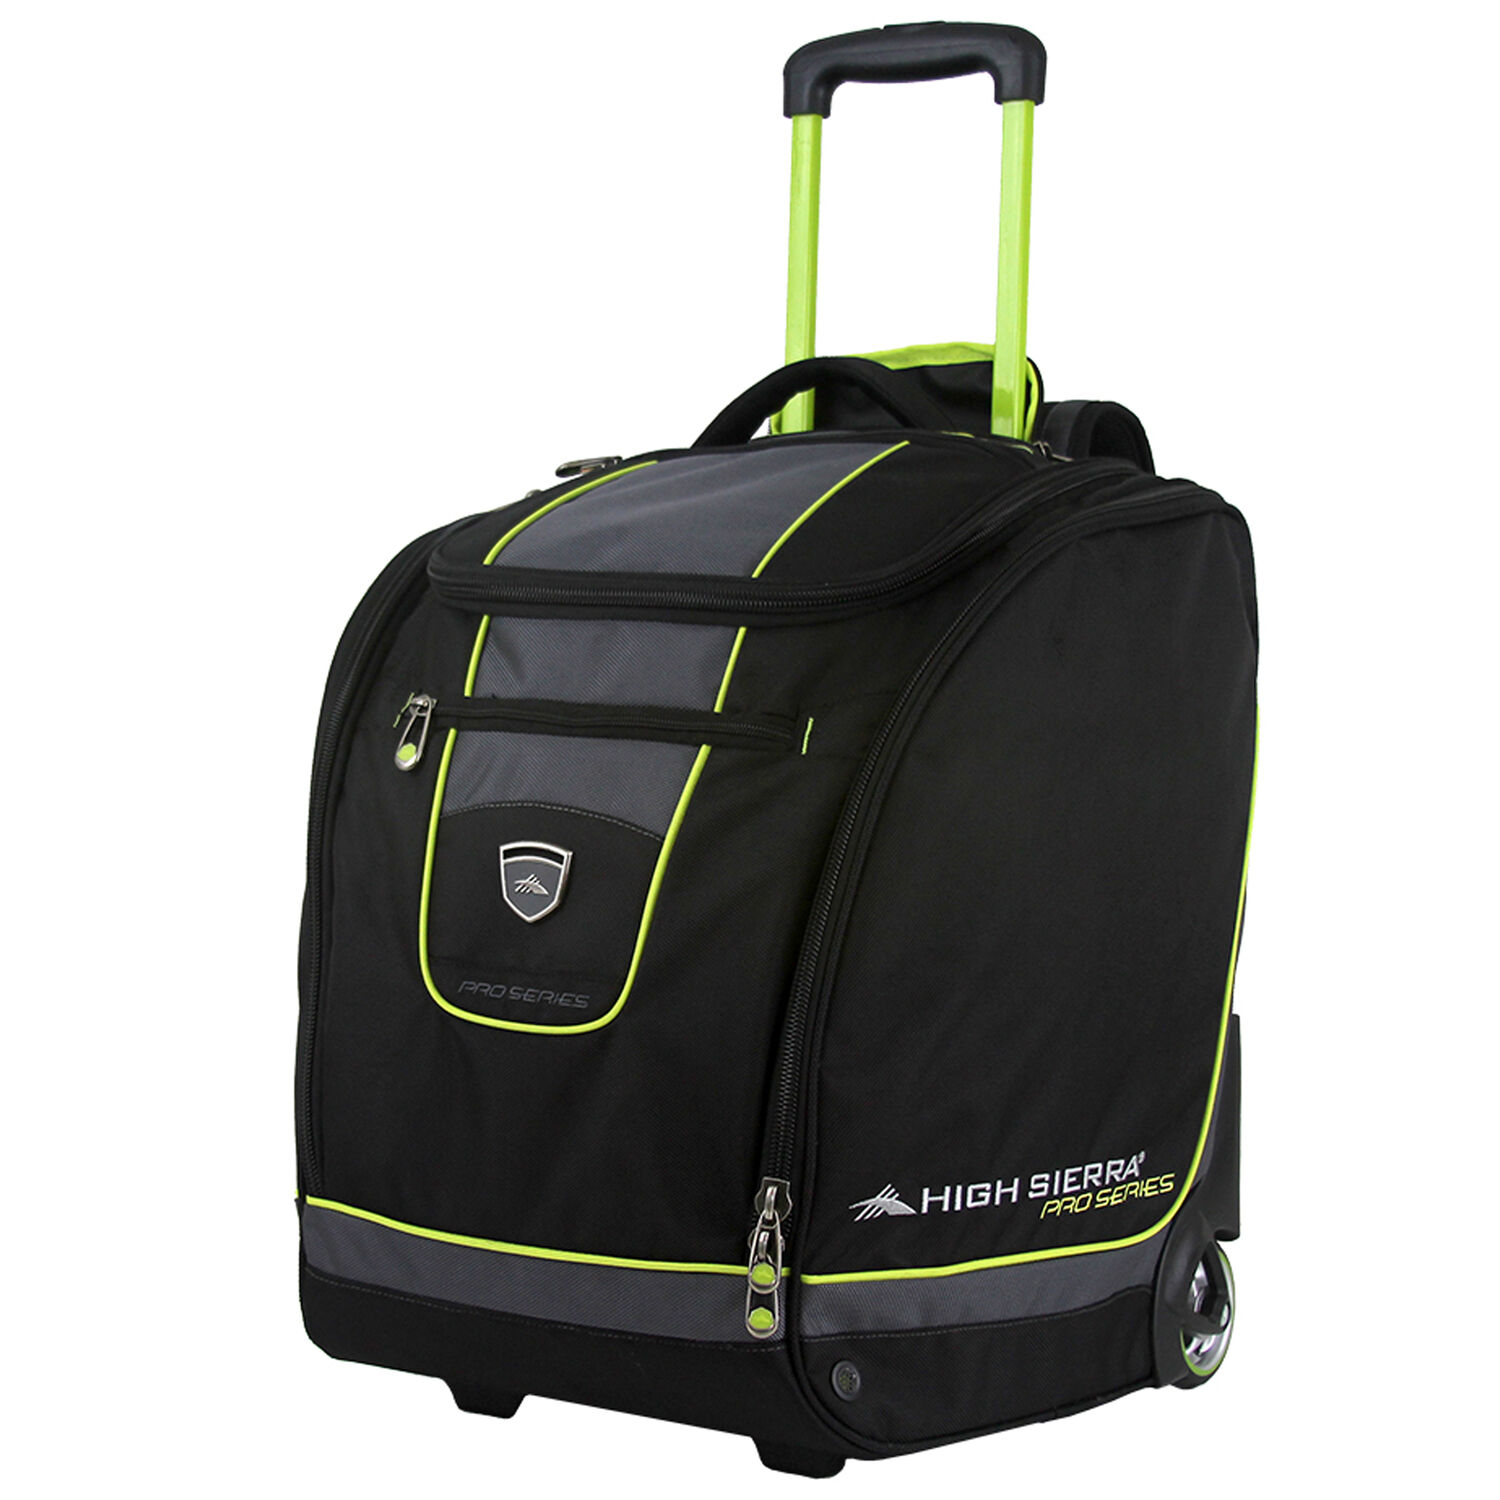 c178e8149f00e High Sierra Wheeled Trapezoid Boot Bag in the color Black /Charcoal/Chartreuse.